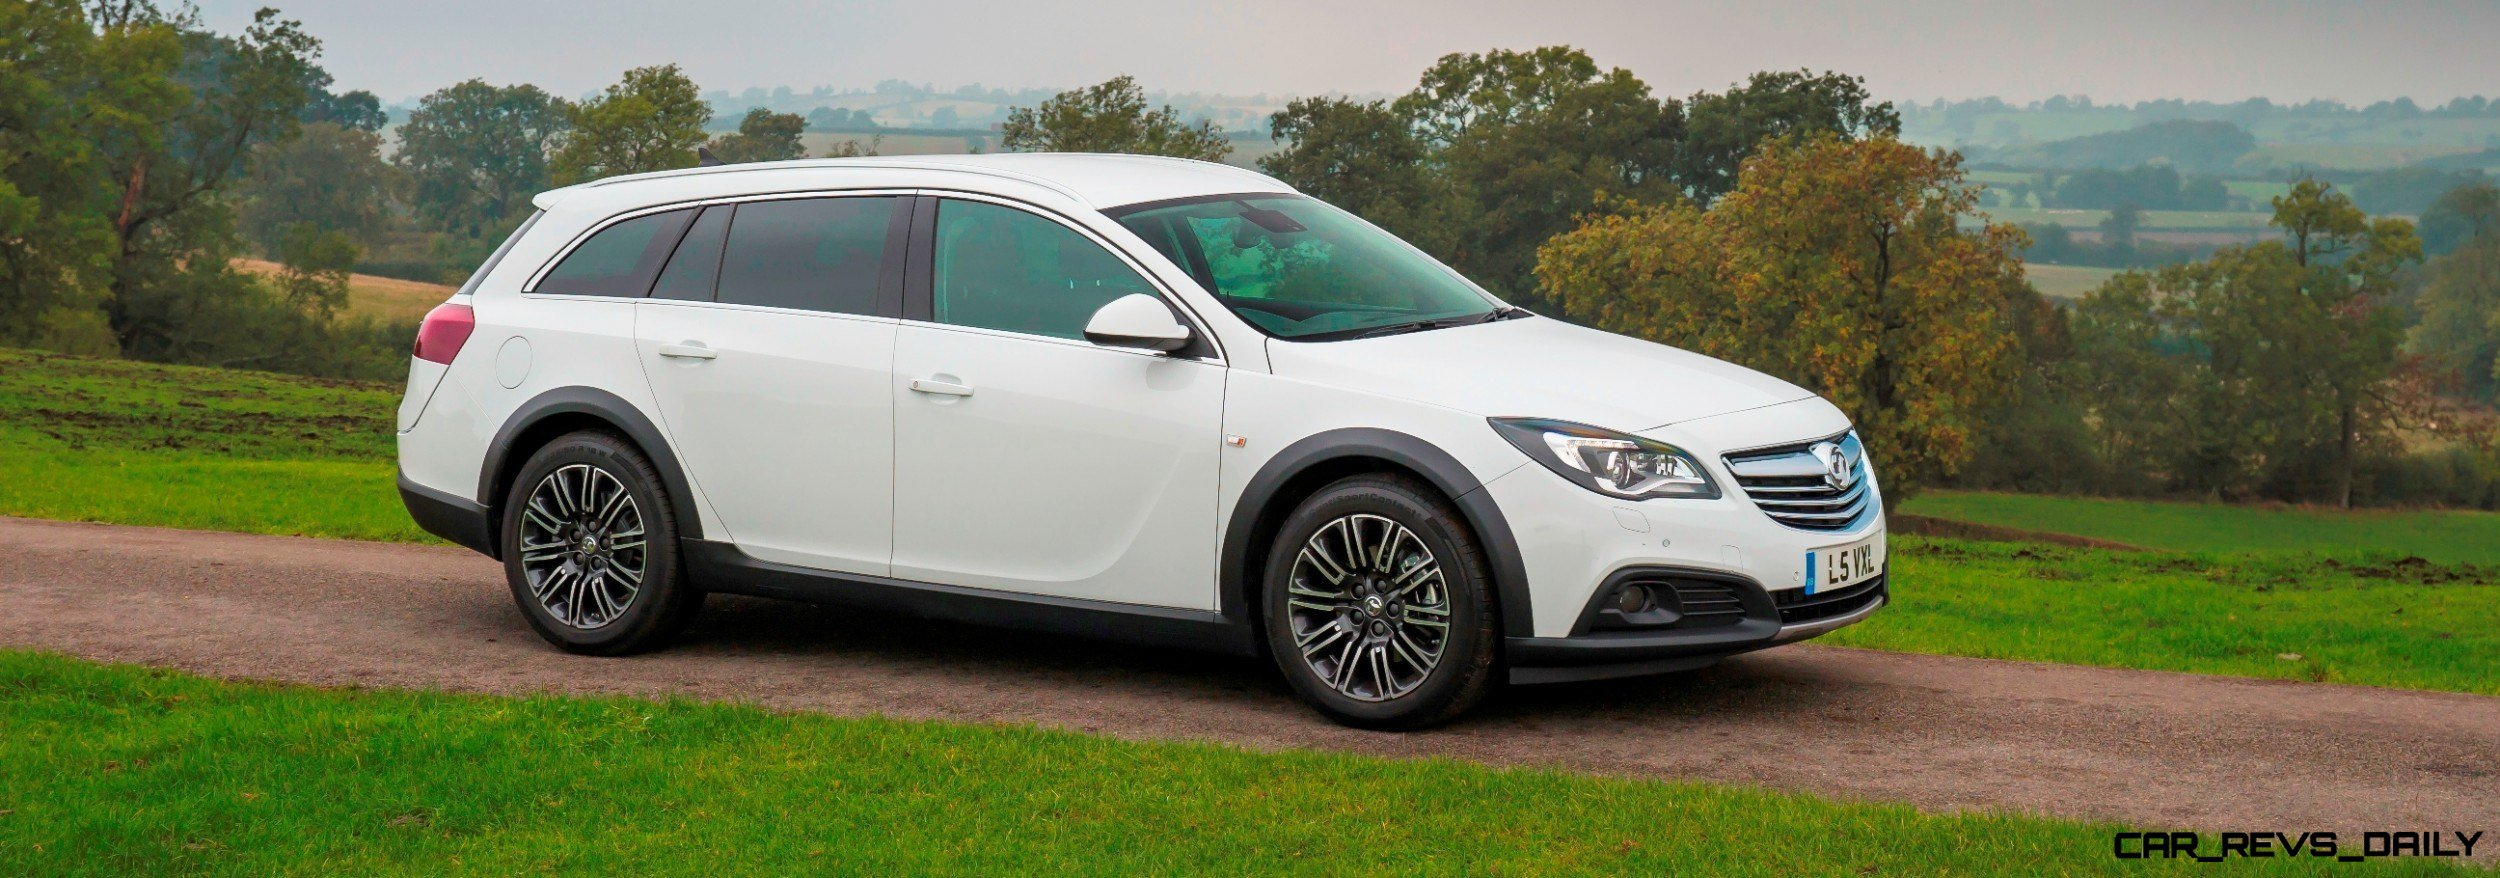 Vauxhall-Insignia-Country-Tourer-289045